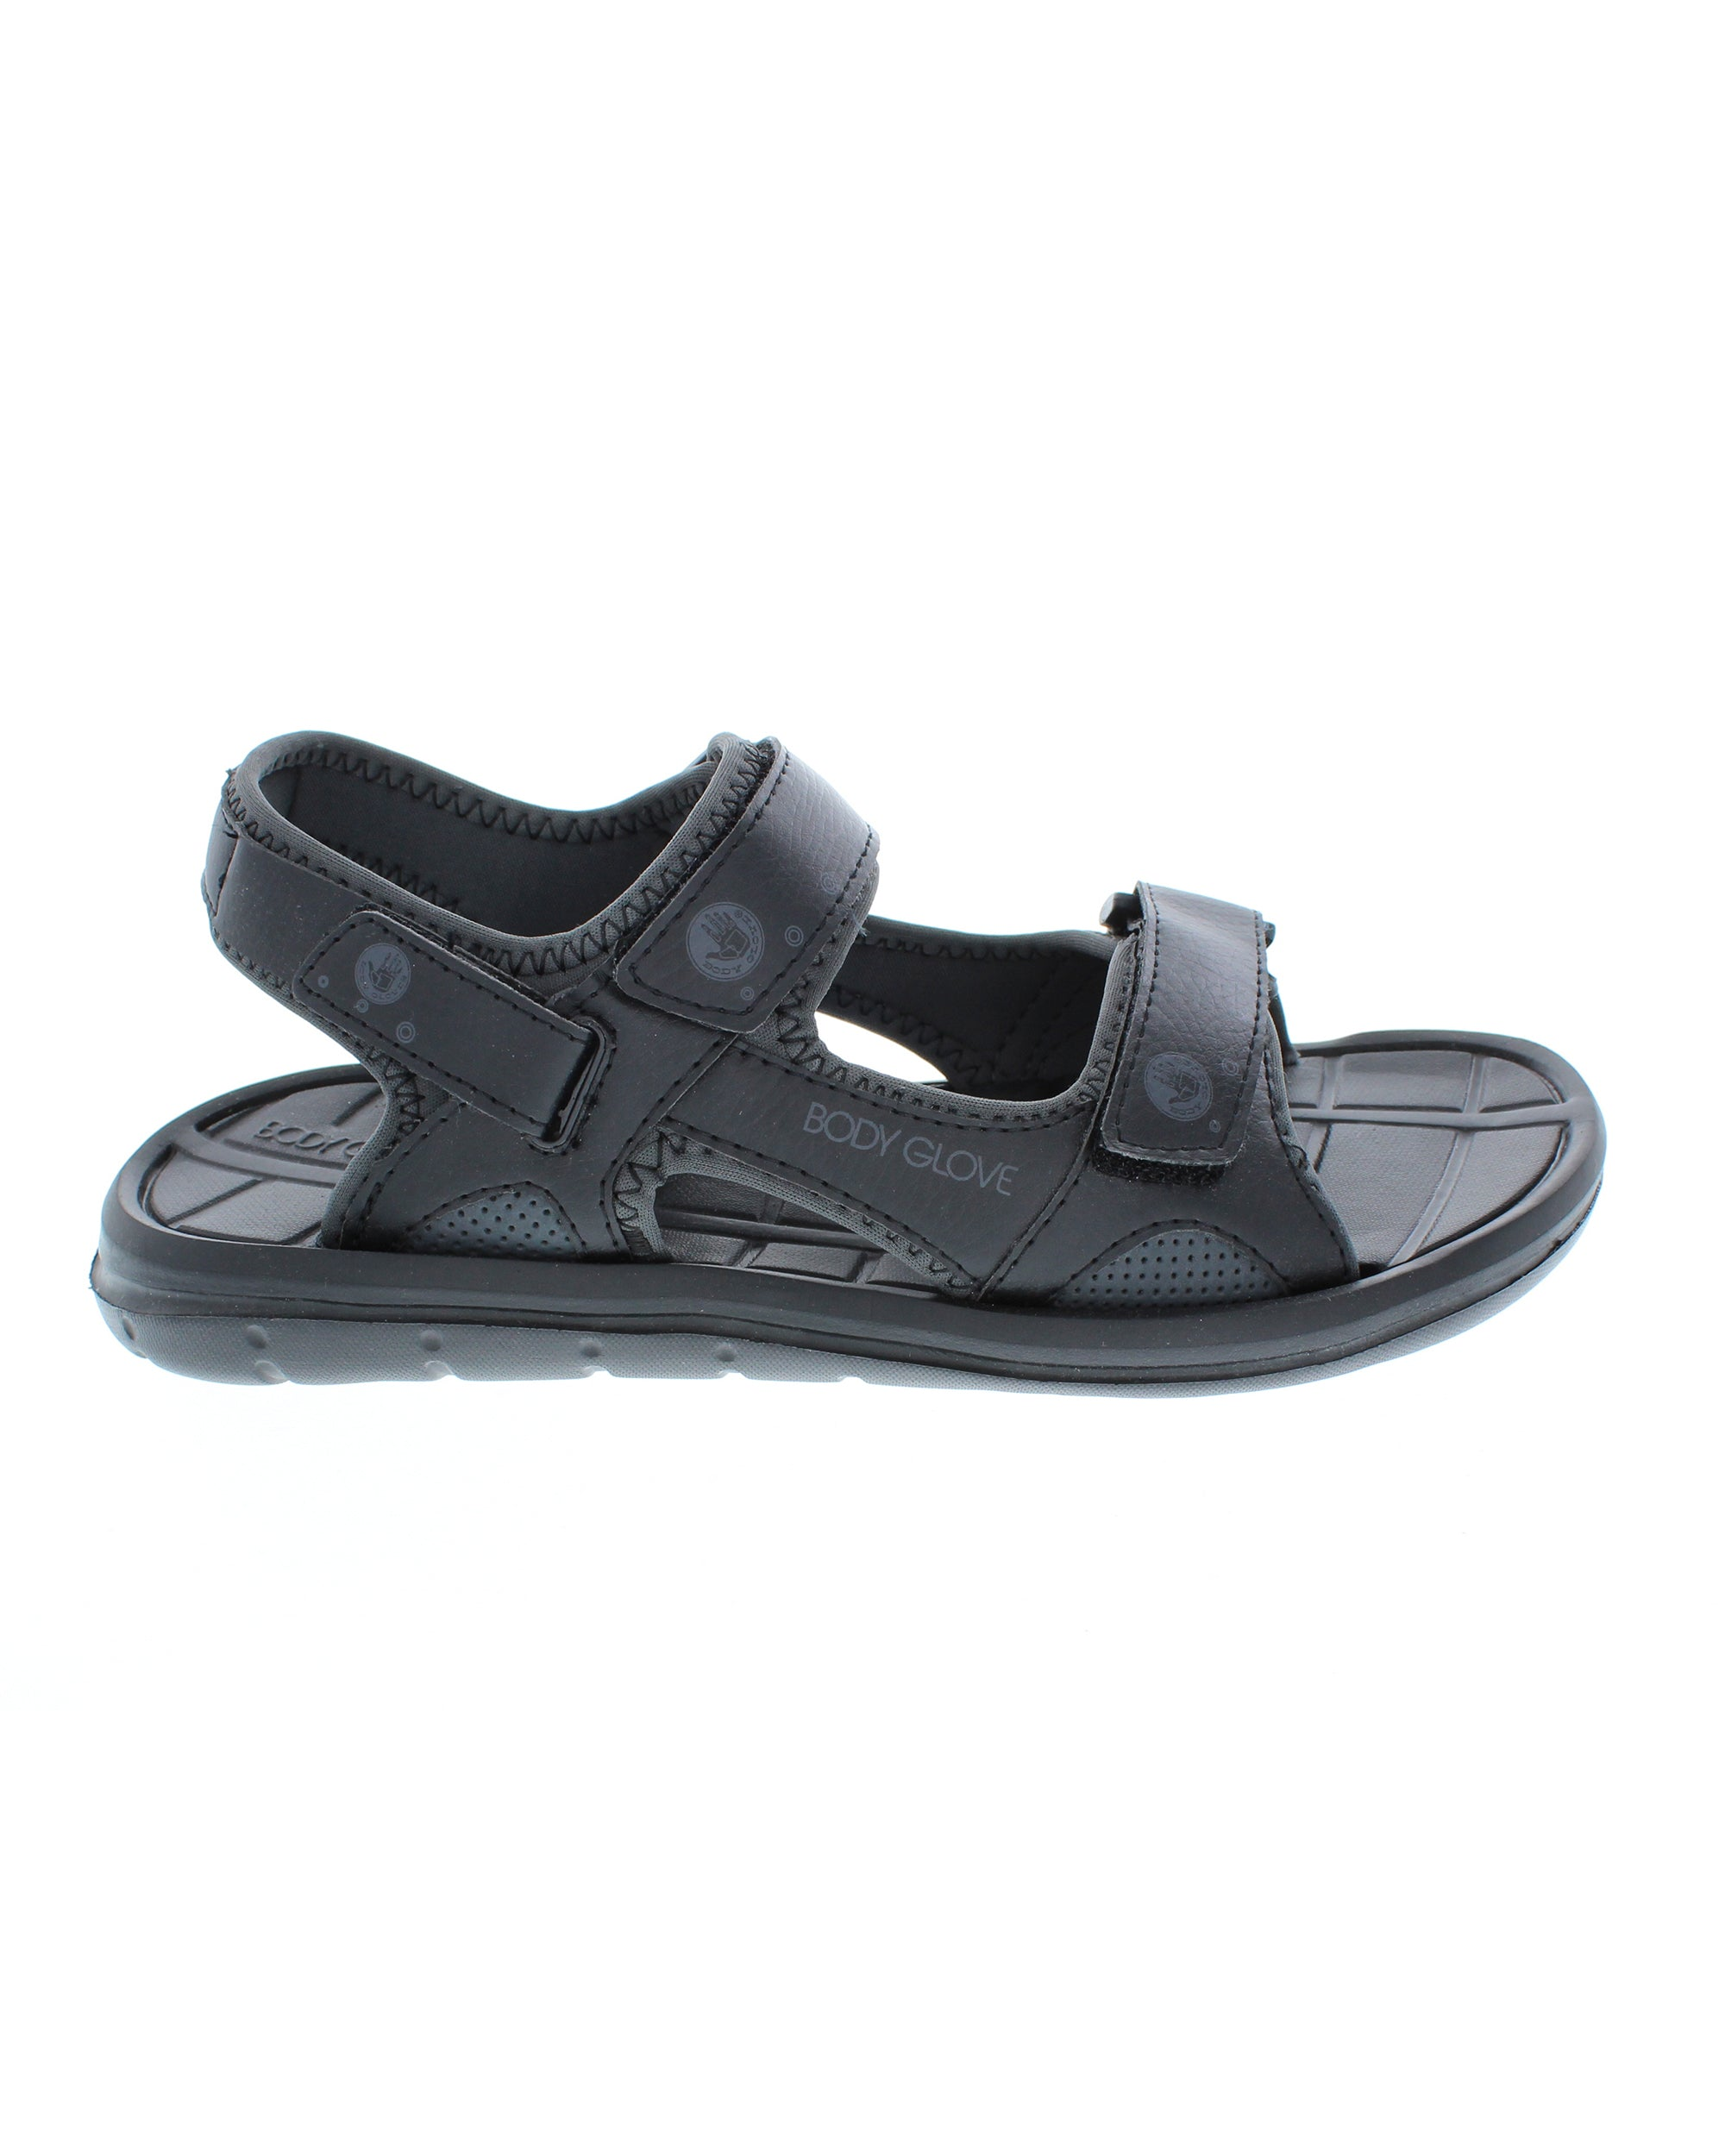 Men's Trek Adjustable Sandals - Black/Black